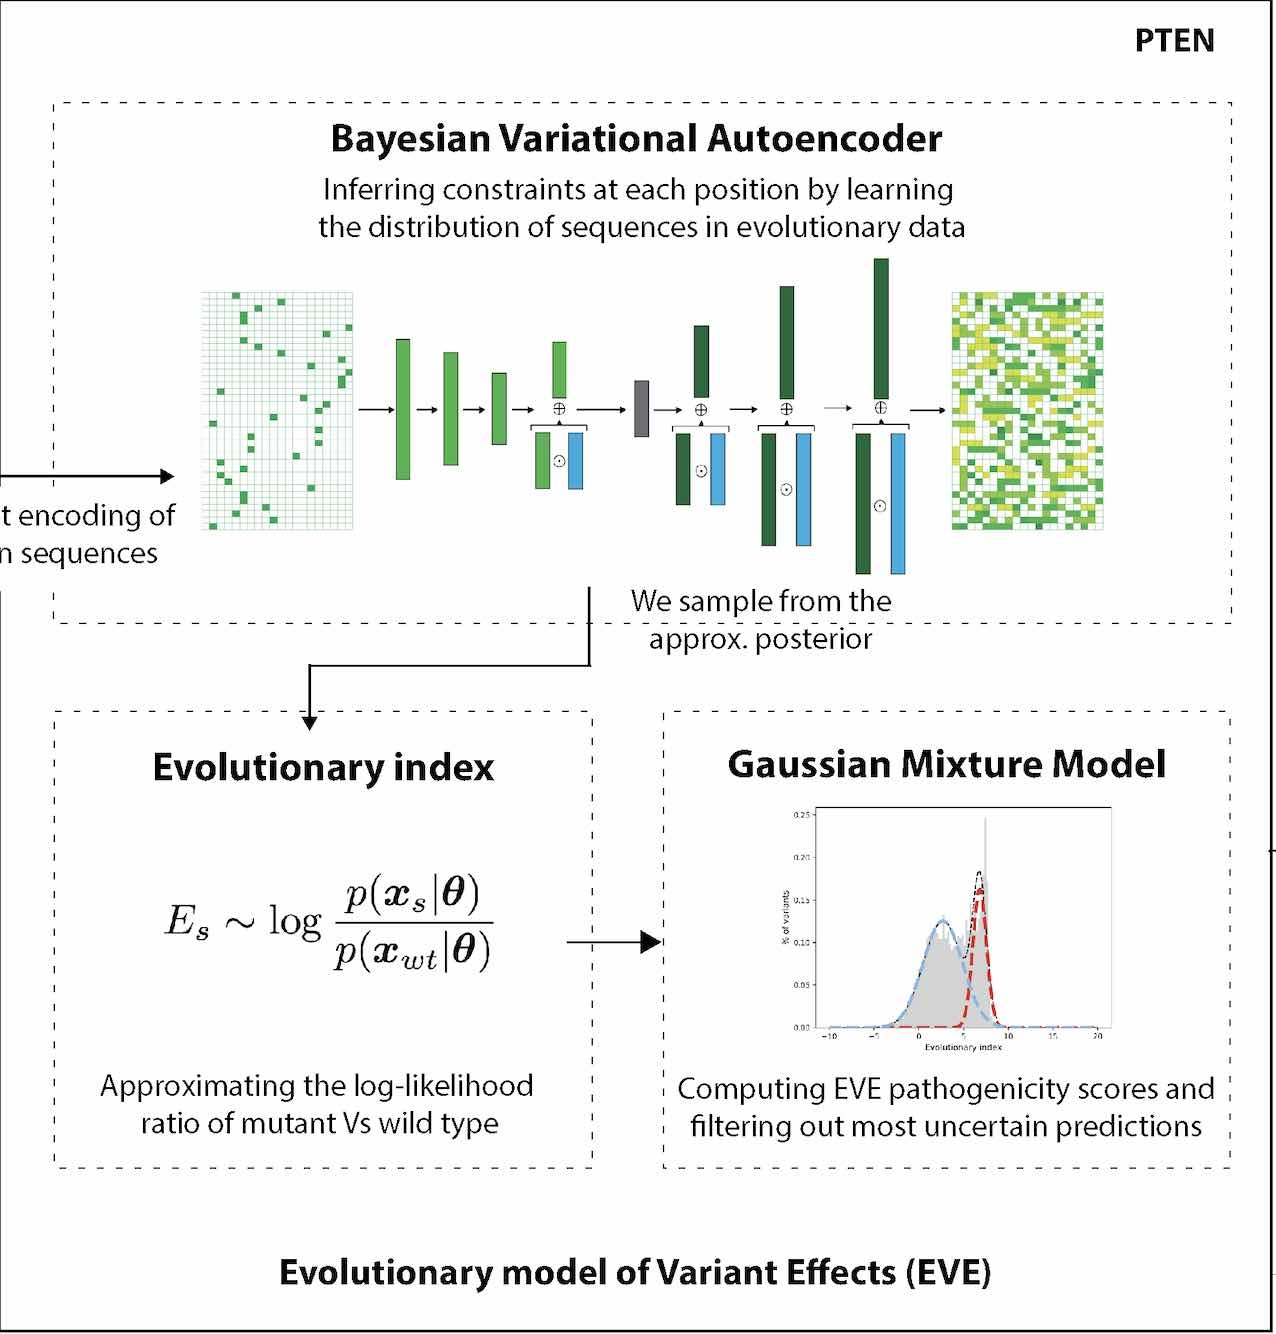 Large-scale clinical interpretation of genetic variants using evolutionary data and deep learning